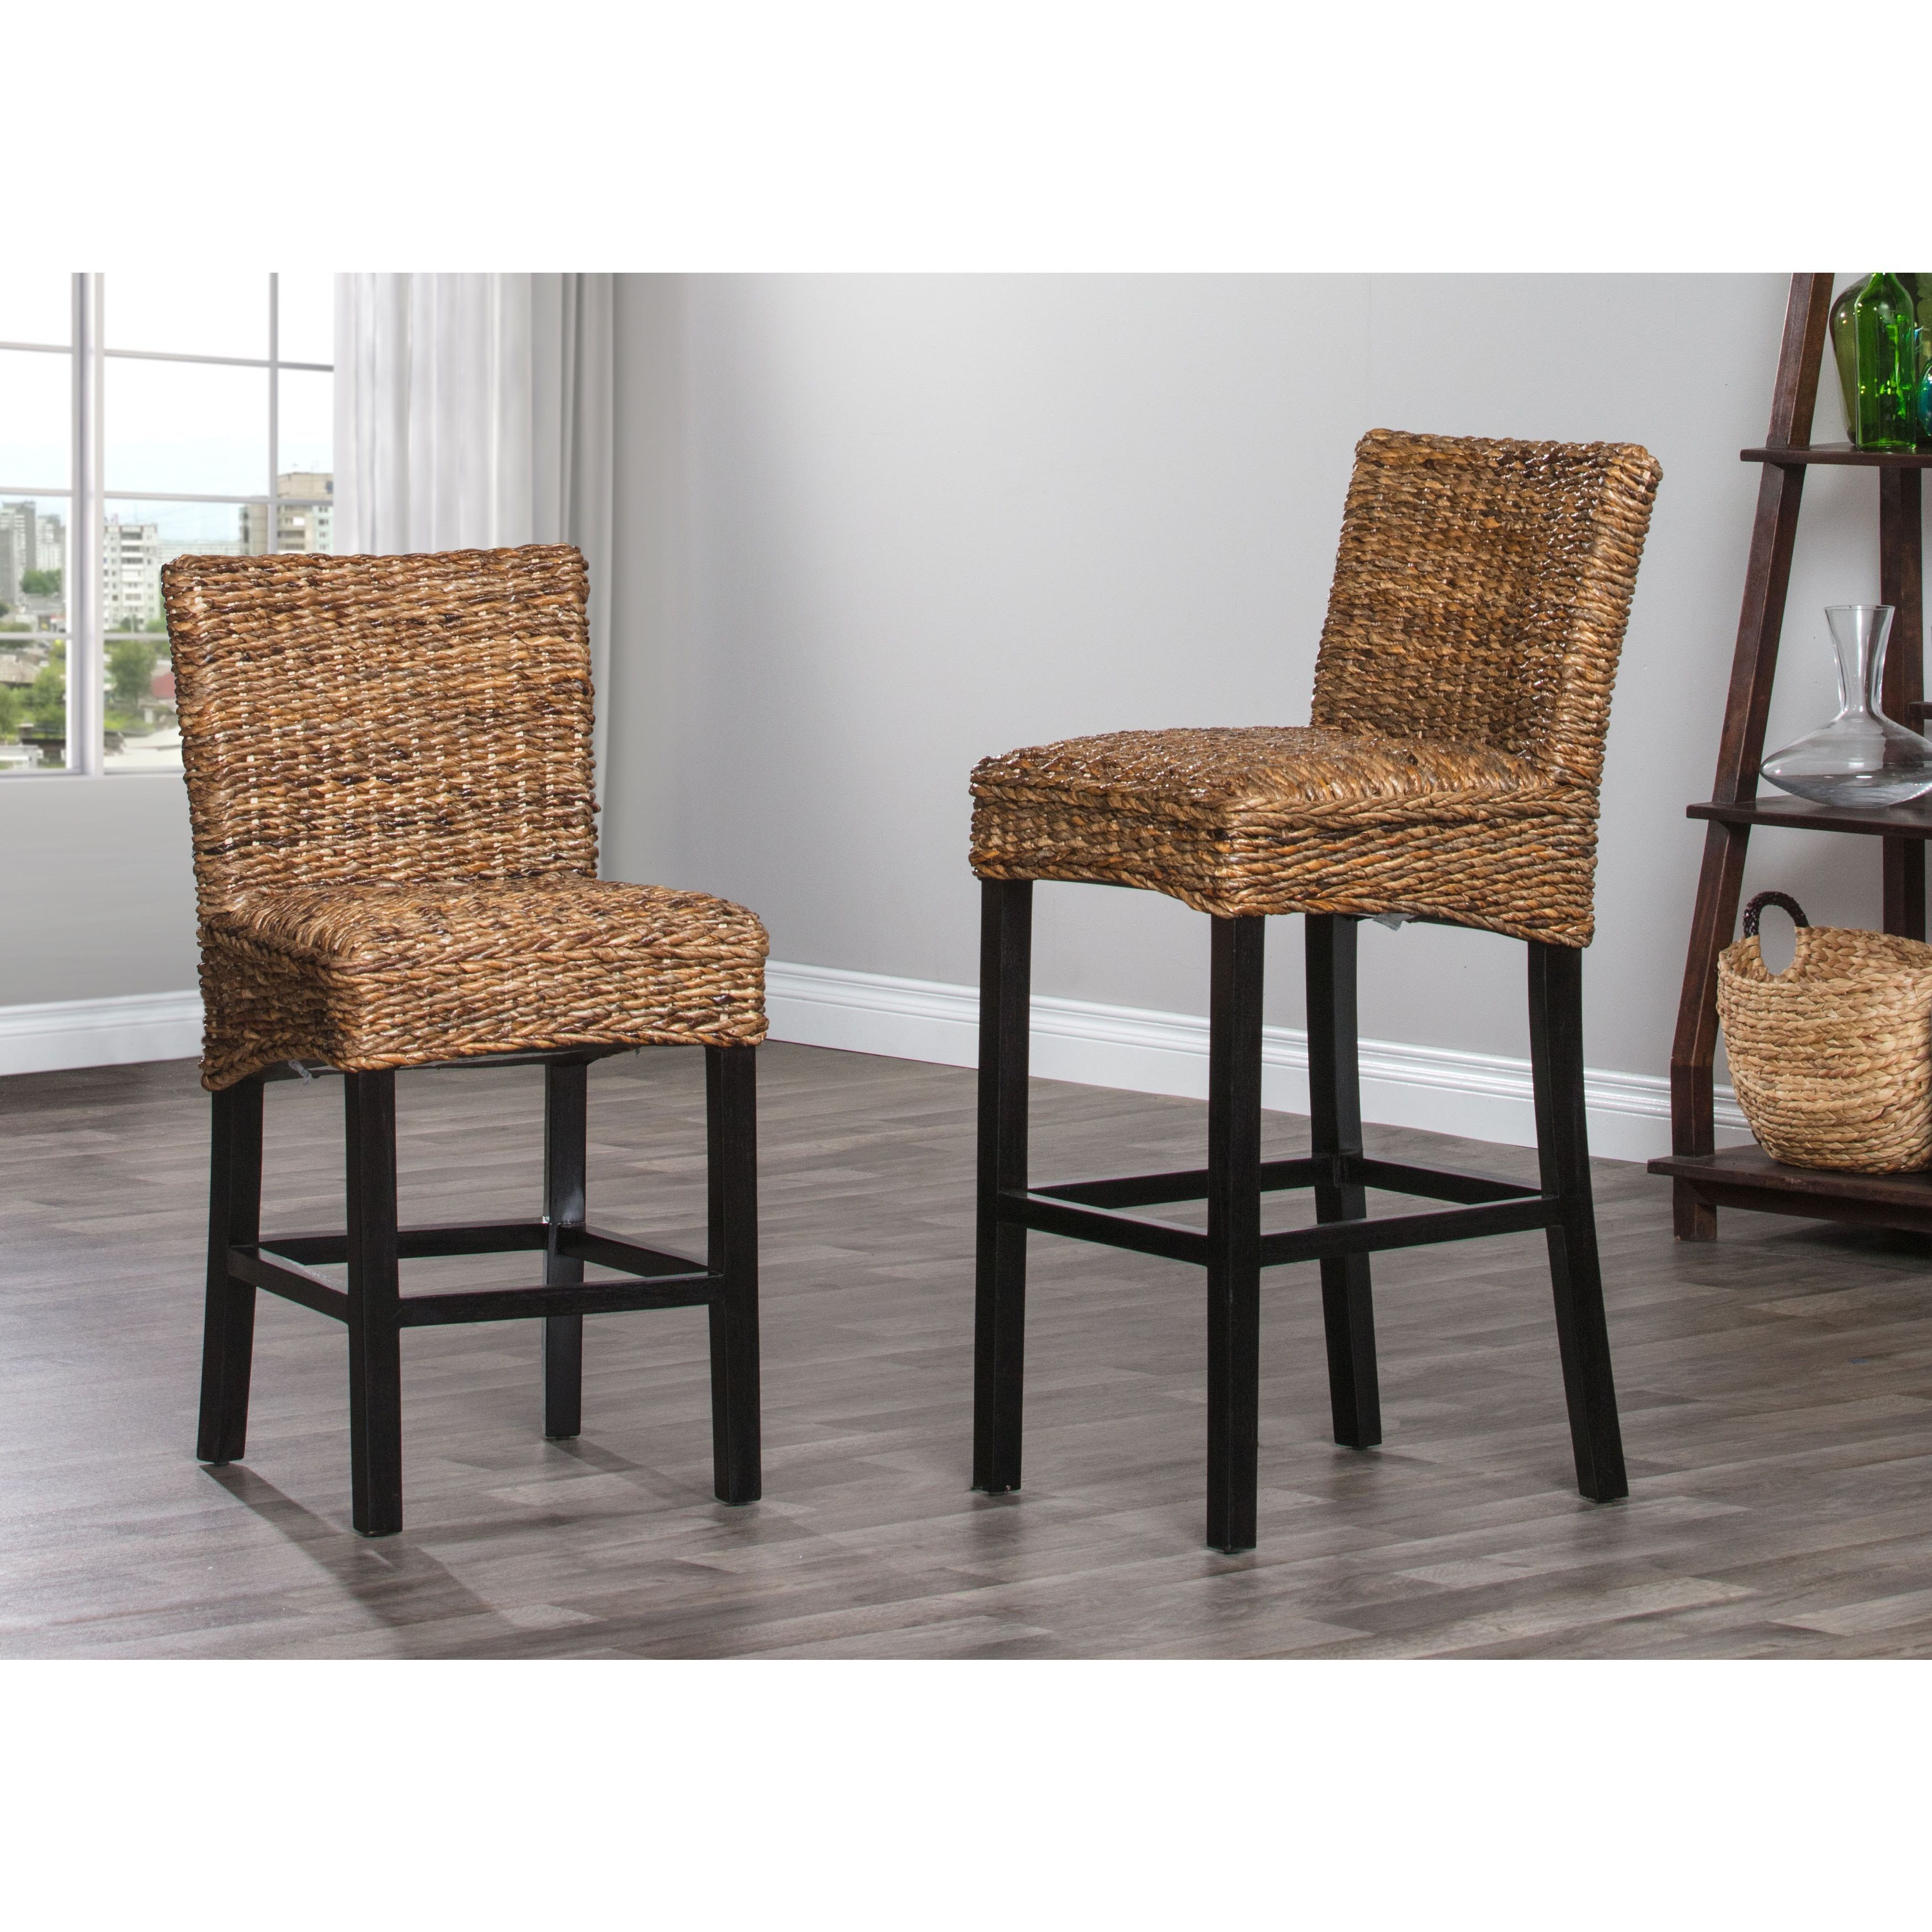 Astounding Portman Rattan 24 Inch Counter Stool By Kosas Home 24 Cjindustries Chair Design For Home Cjindustriesco